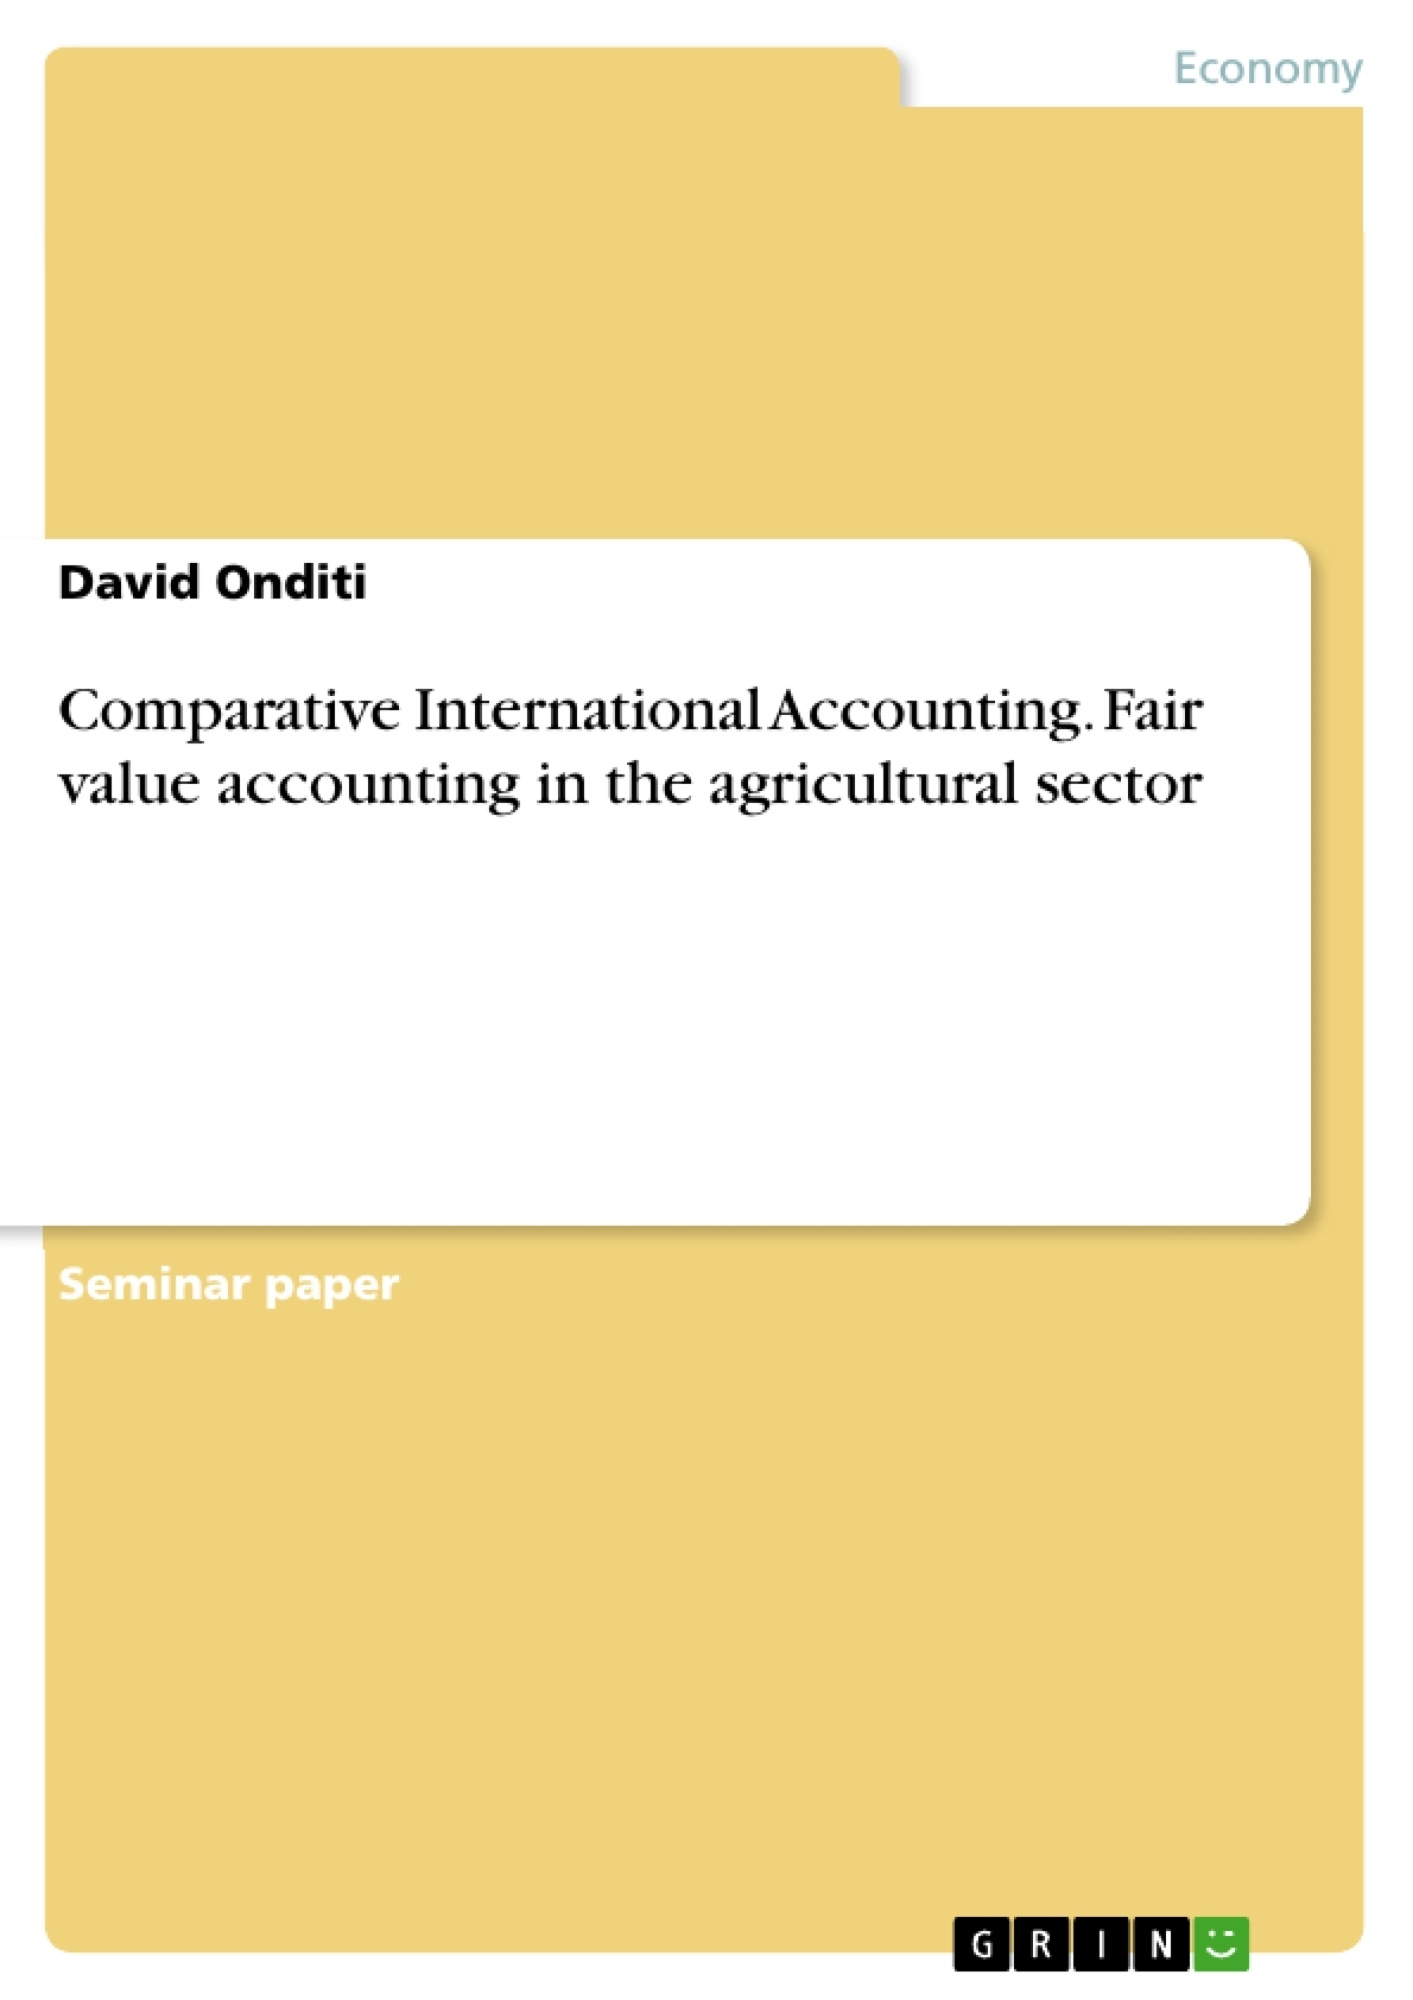 Title: Comparative International Accounting. Fair value accounting in the agricultural sector